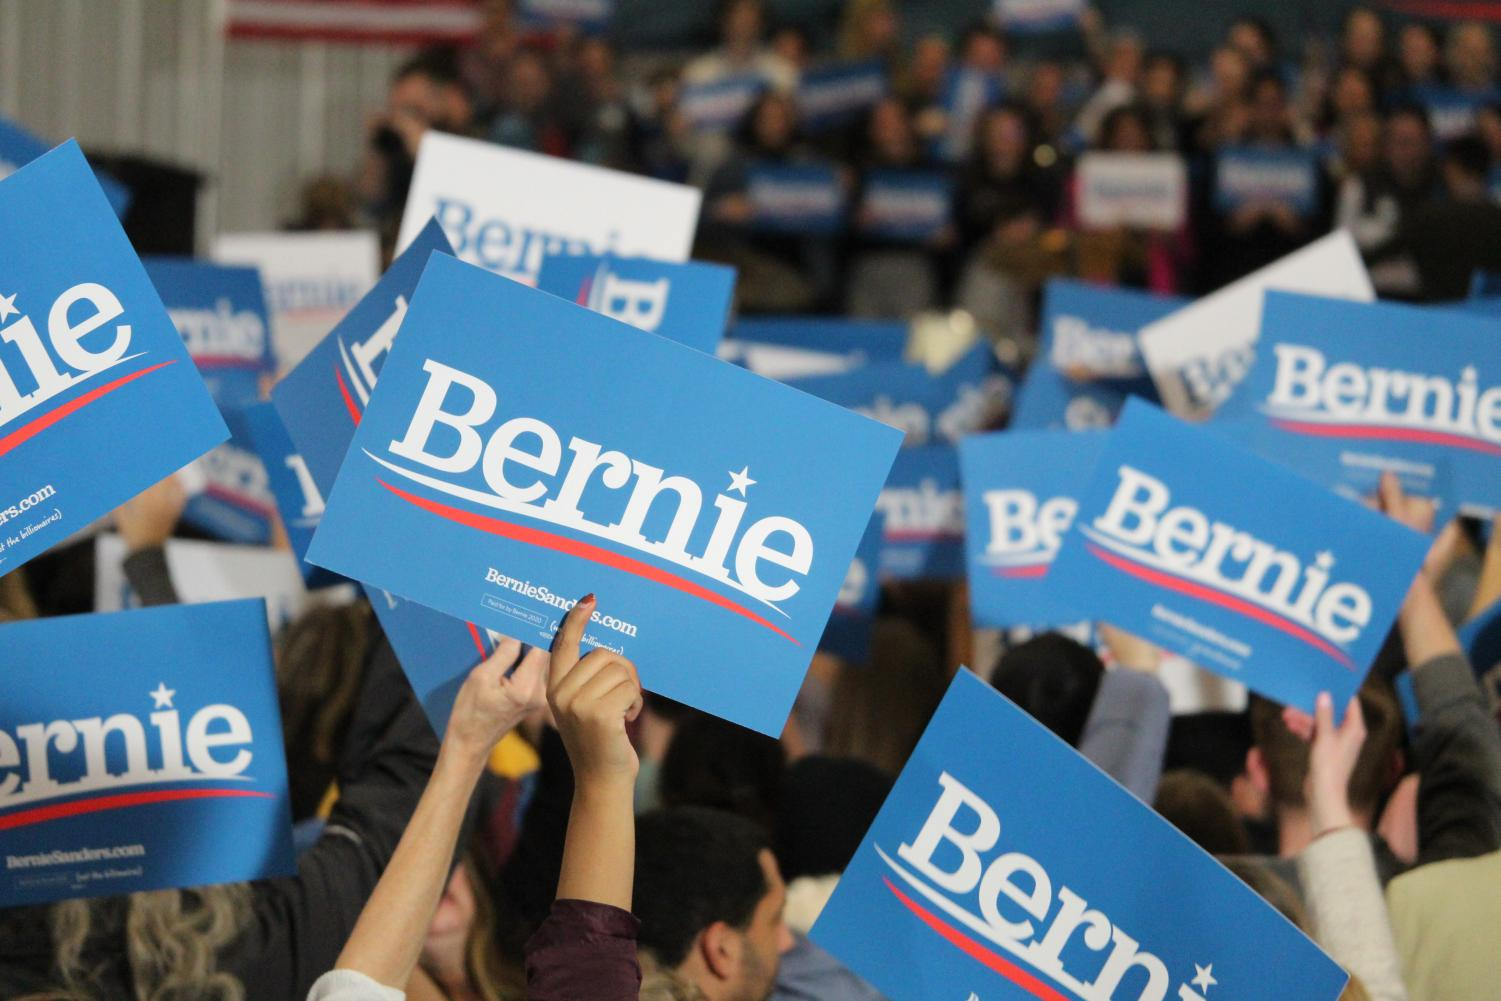 Campaign signs being held up at the Bernie Sanders rally in Council Bluffs at Iowa Western Community College on November 8, 2019.